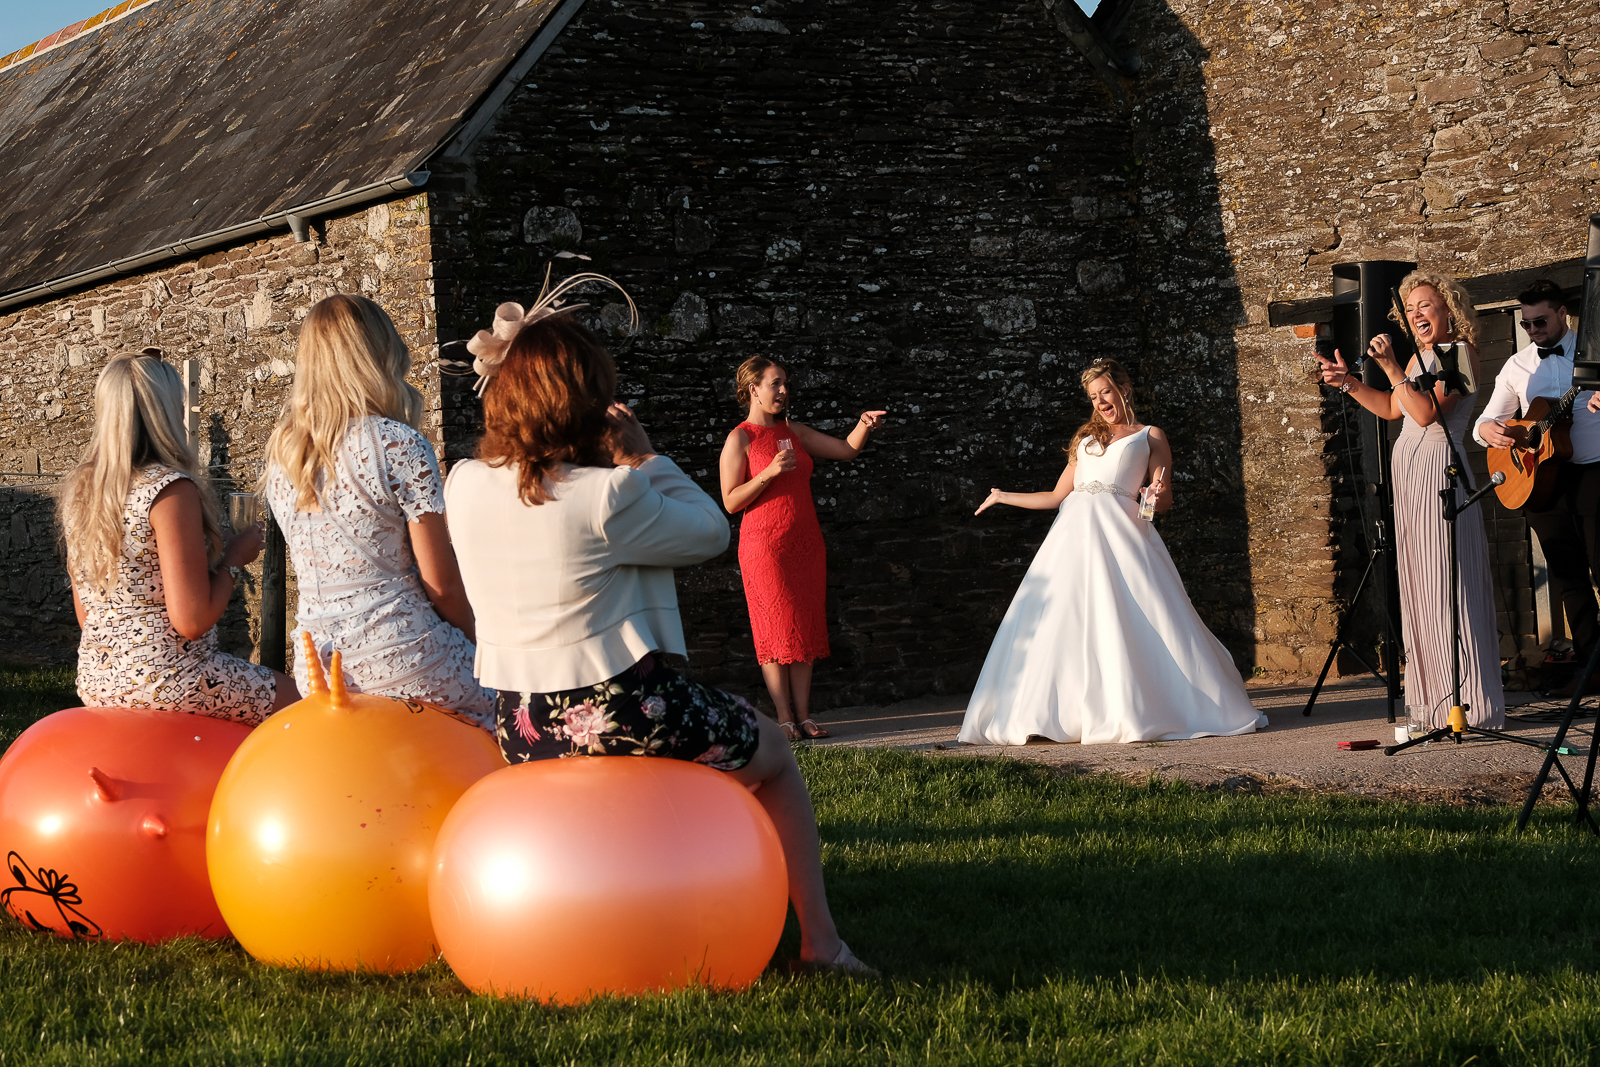 Space hoppers and live music at claire and tim's New Barton Barns wedding in Devon